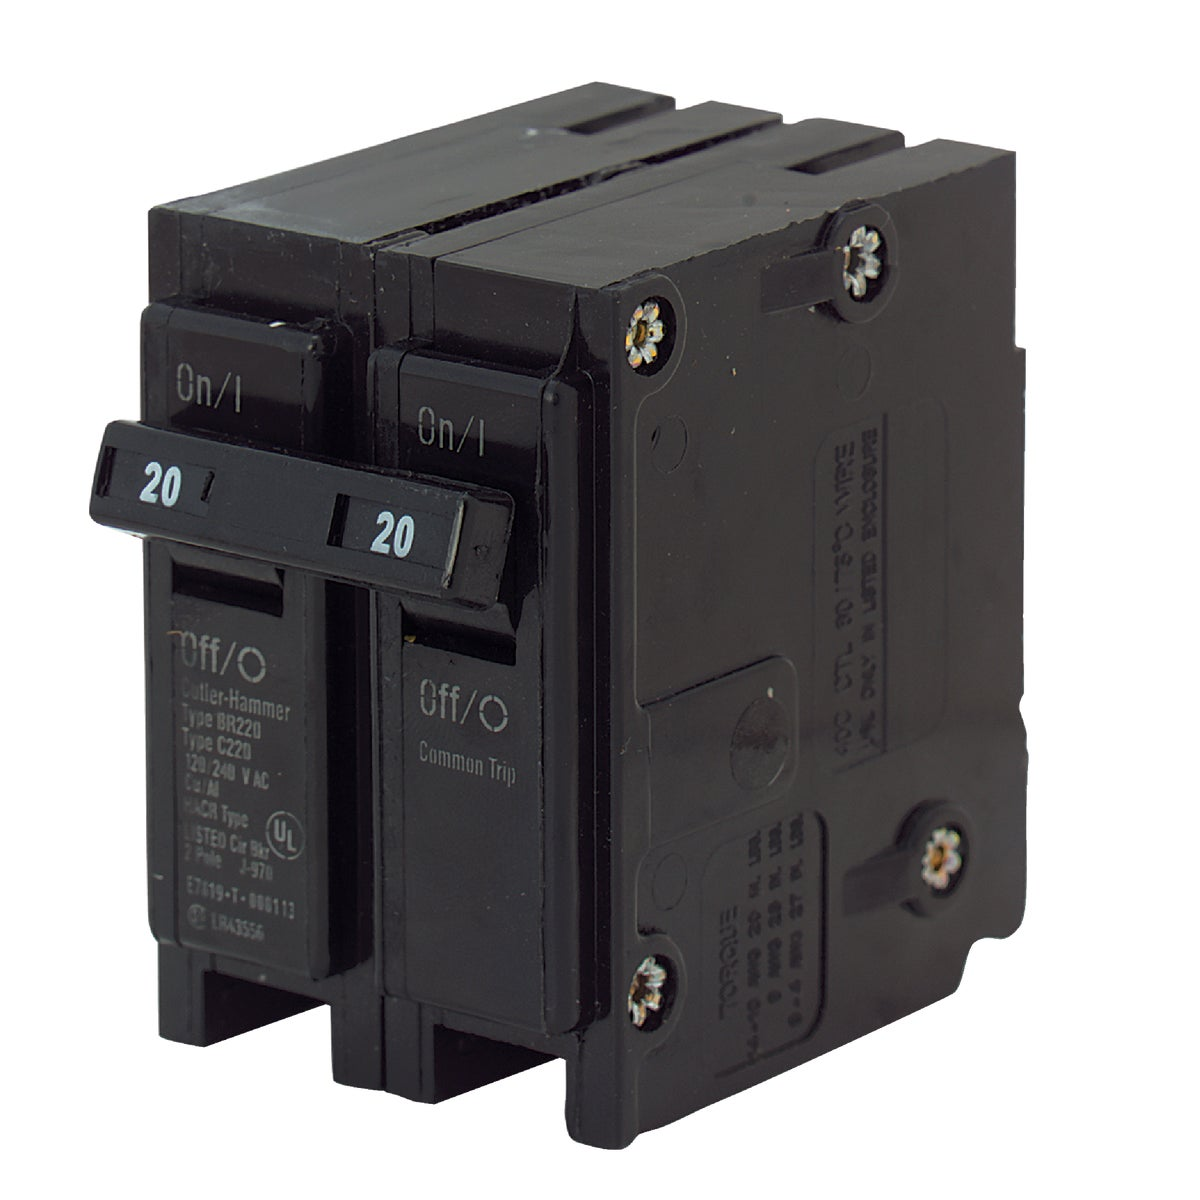 20A 2P CIRCUIT BREAKER - BR220 by Eaton Corporation